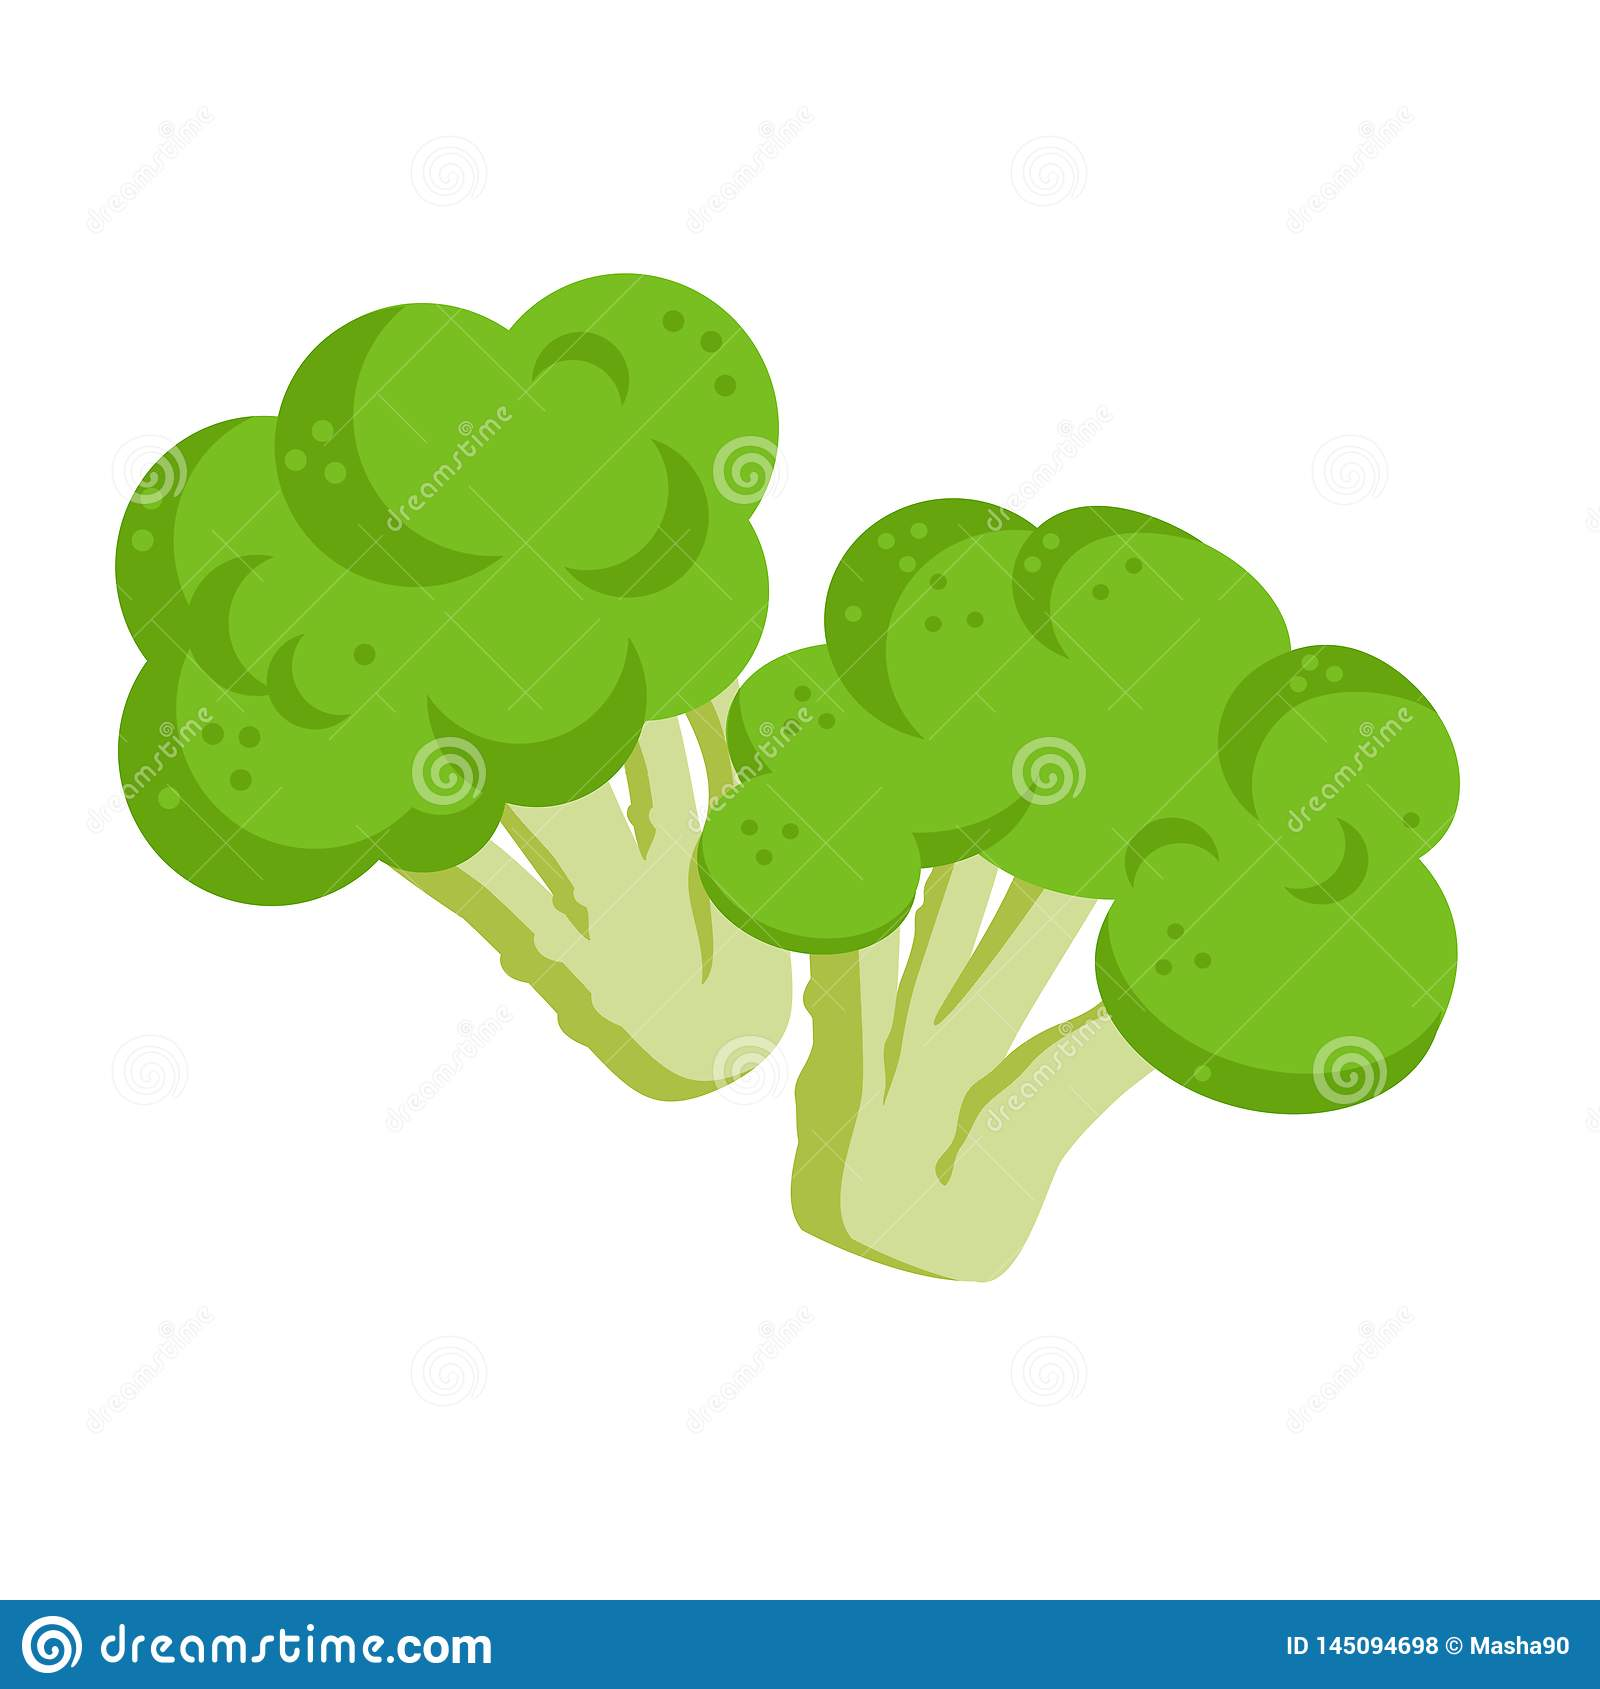 broccoli icon flat illustration of broccoli vector icon isolated on white background stock vector illustration of freshness healthy 145094698 https www dreamstime com broccoli icon flat illustration broccoli vector icon isolated white background broccoli icon flat illustration broccoli image145094698